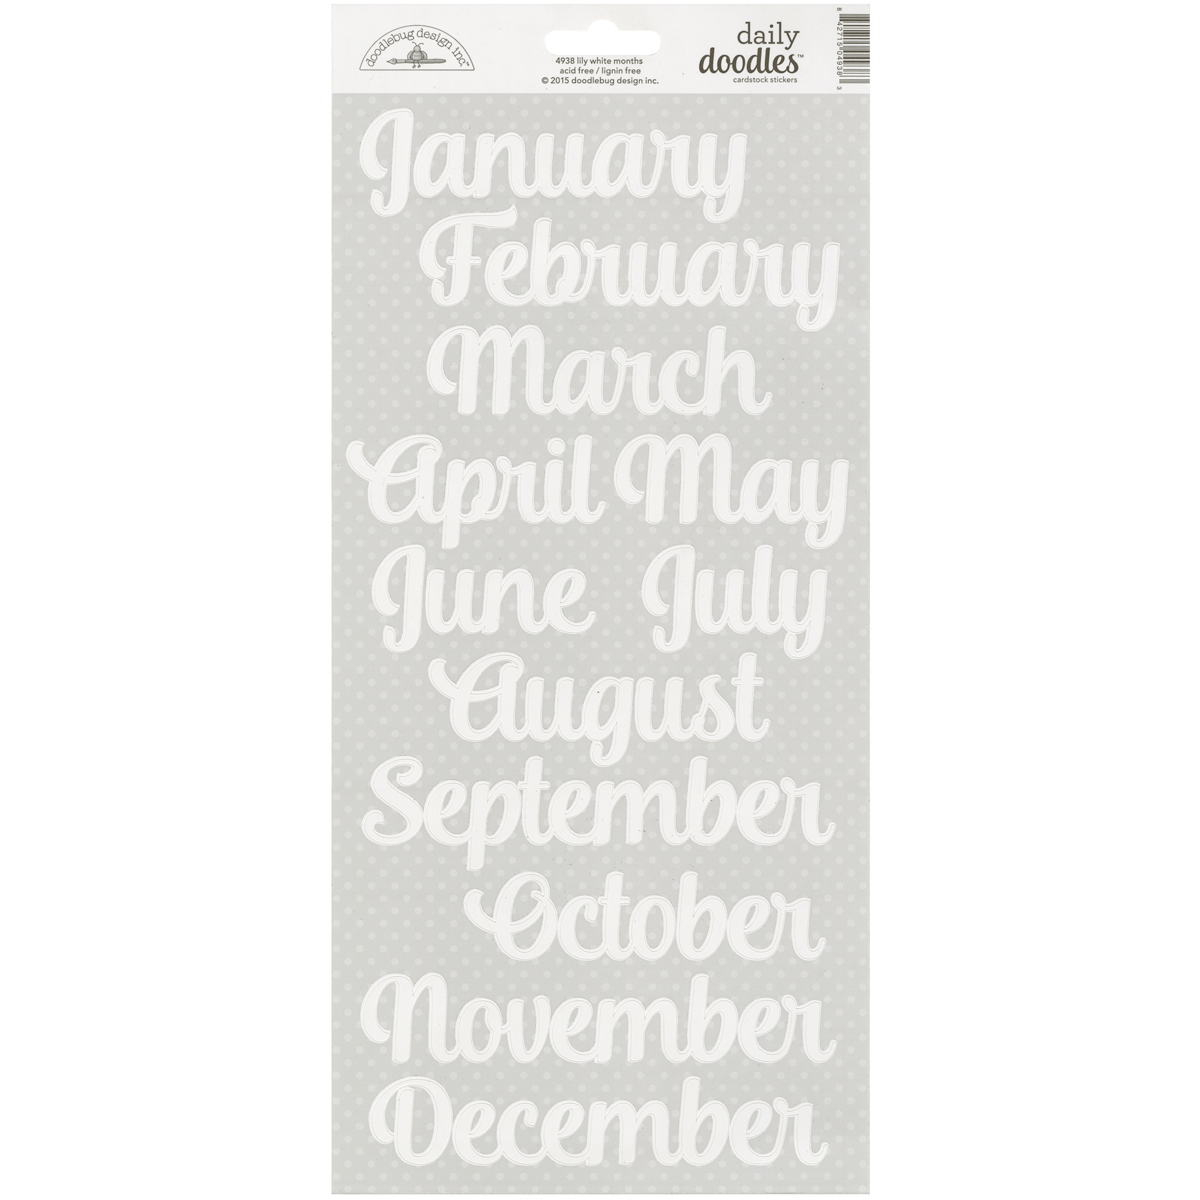 Doodlebug-Daily-Doodles-Cardstock-Stickers-6-034-X13-034-Lily-White-Months-DAI4938